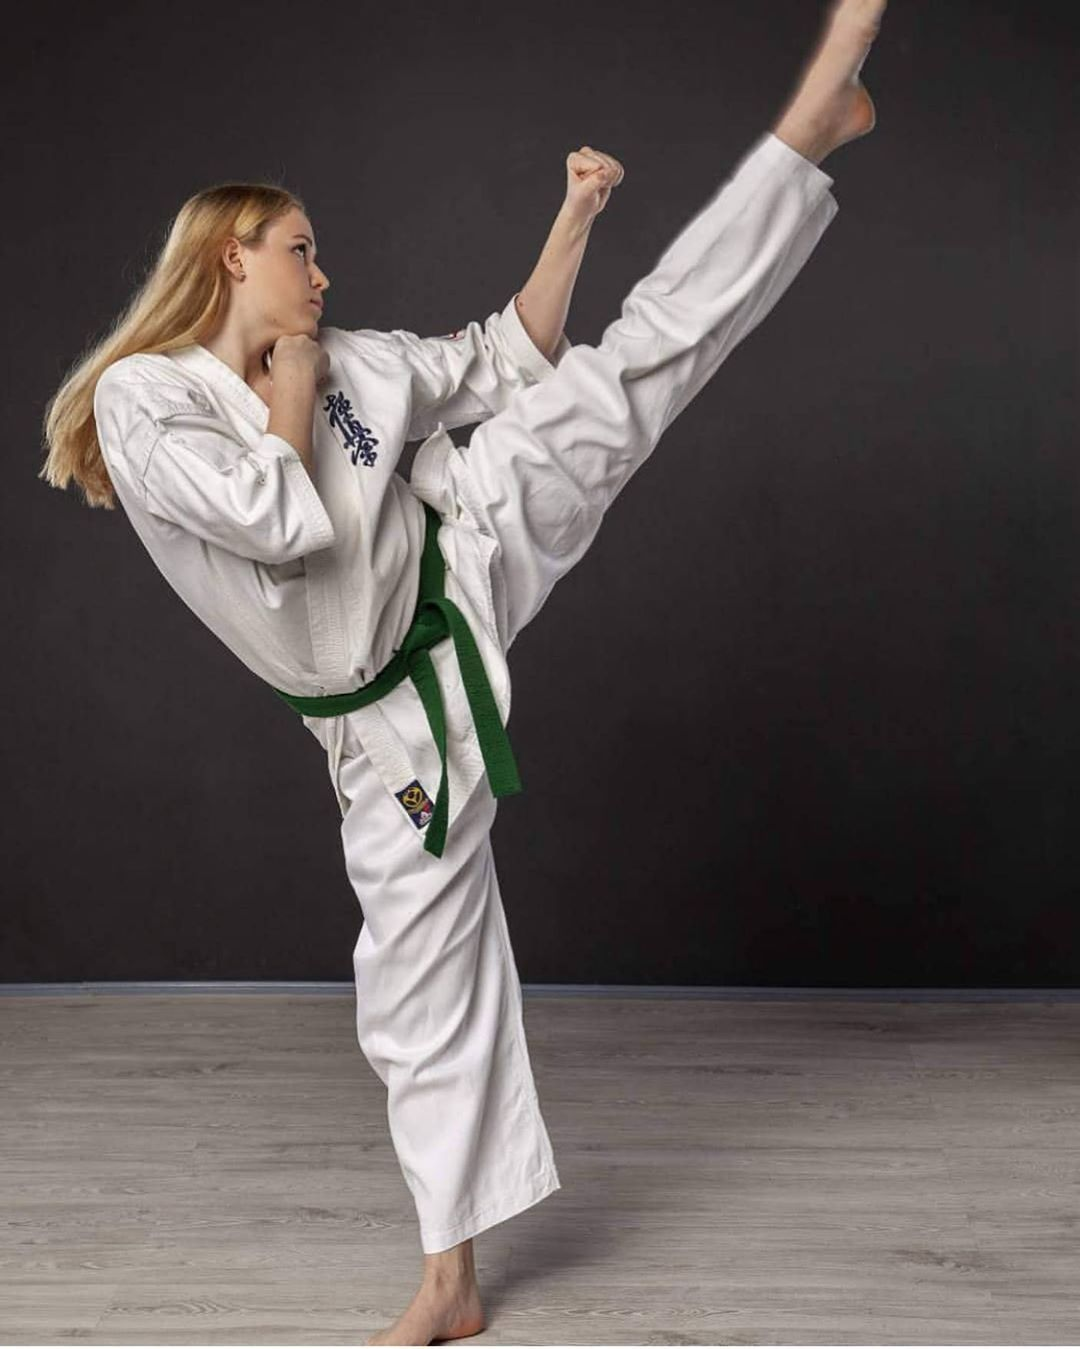 Pin By James Colwell On Karate In 2020 Martial Arts Women Martial Arts Female Martial Artists